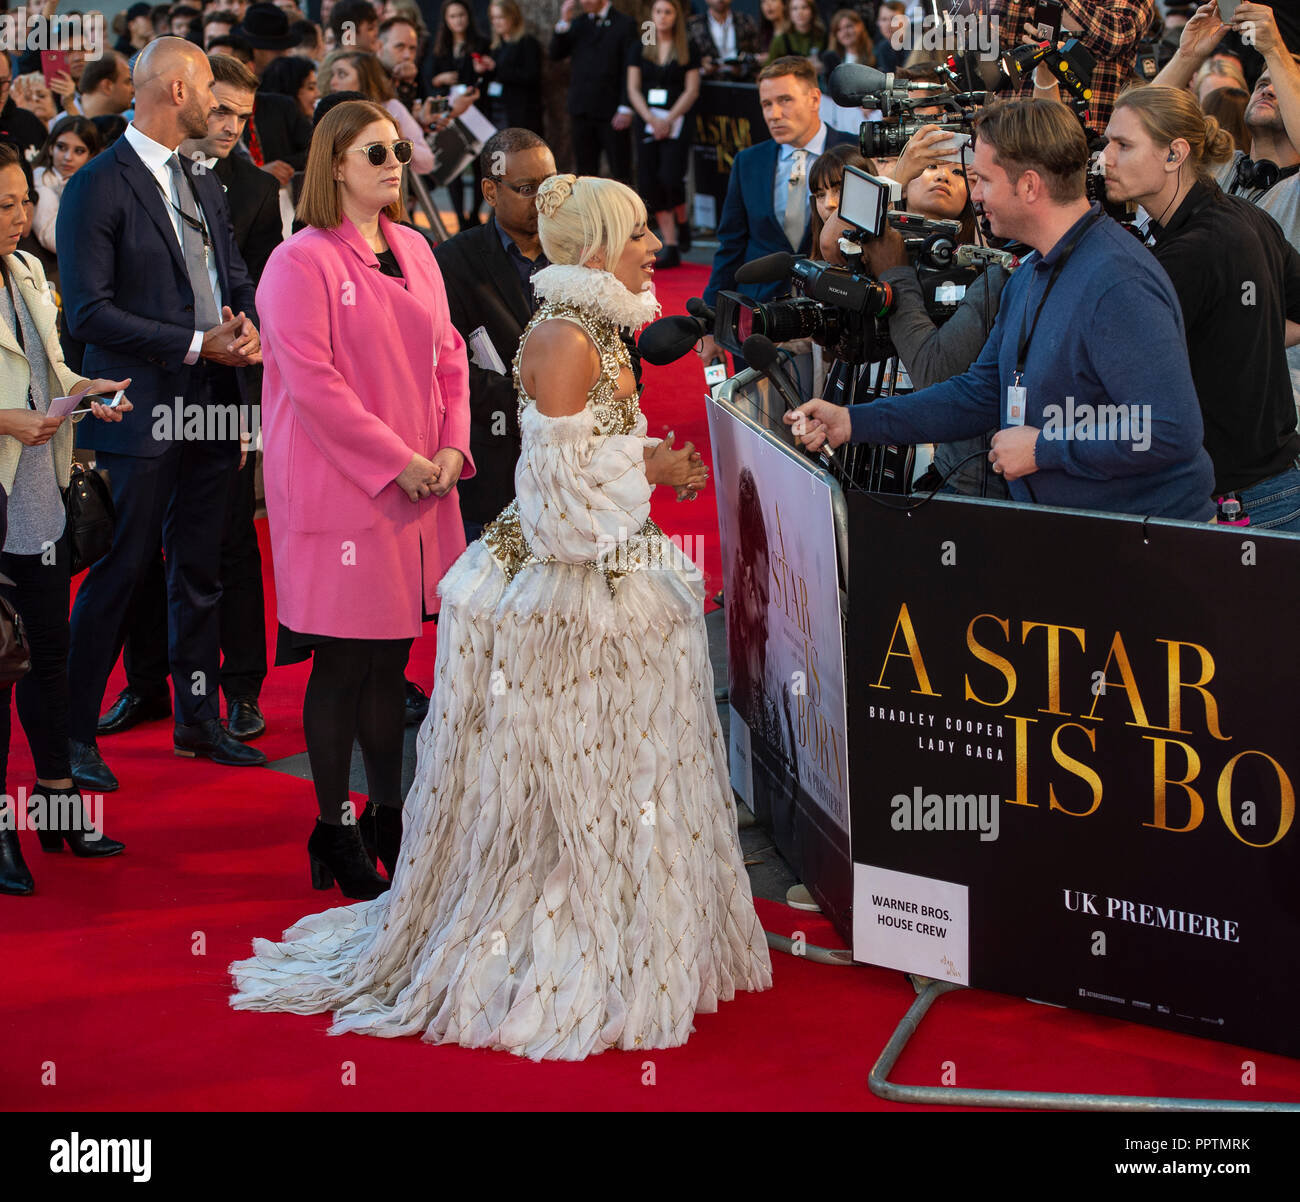 6db0c5c7919132 A Star Is Born  - UK Premiere - VIP Arrivals Stock Photo  220590039 ...